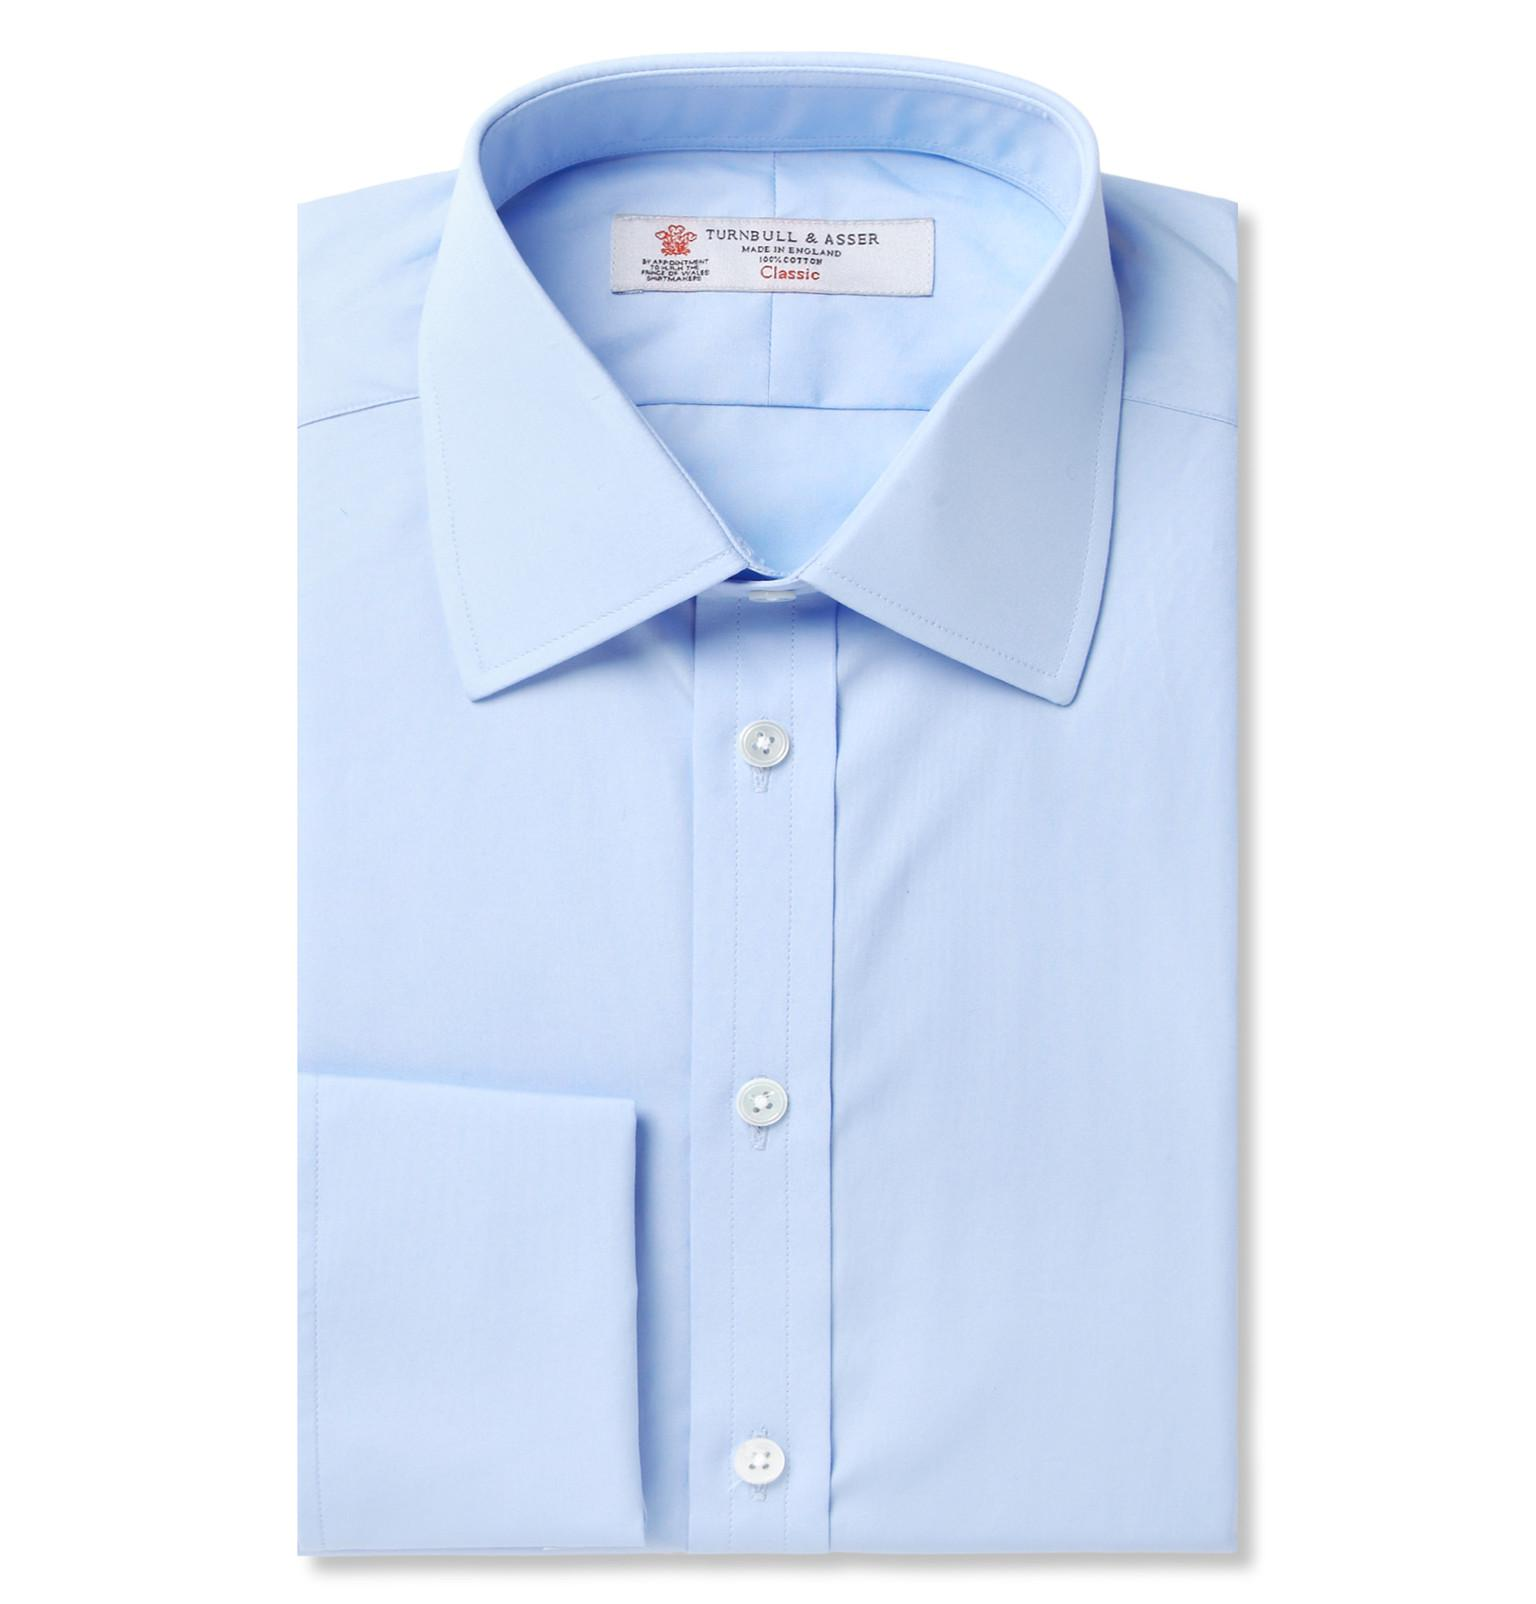 Blue Double-cuff Cotton Shirt Turnbull & Asser Free Shipping Affordable Sast For Sale Cheap Sale For Sale Cheap Price Discount Authentic Cool 9KcnQ6